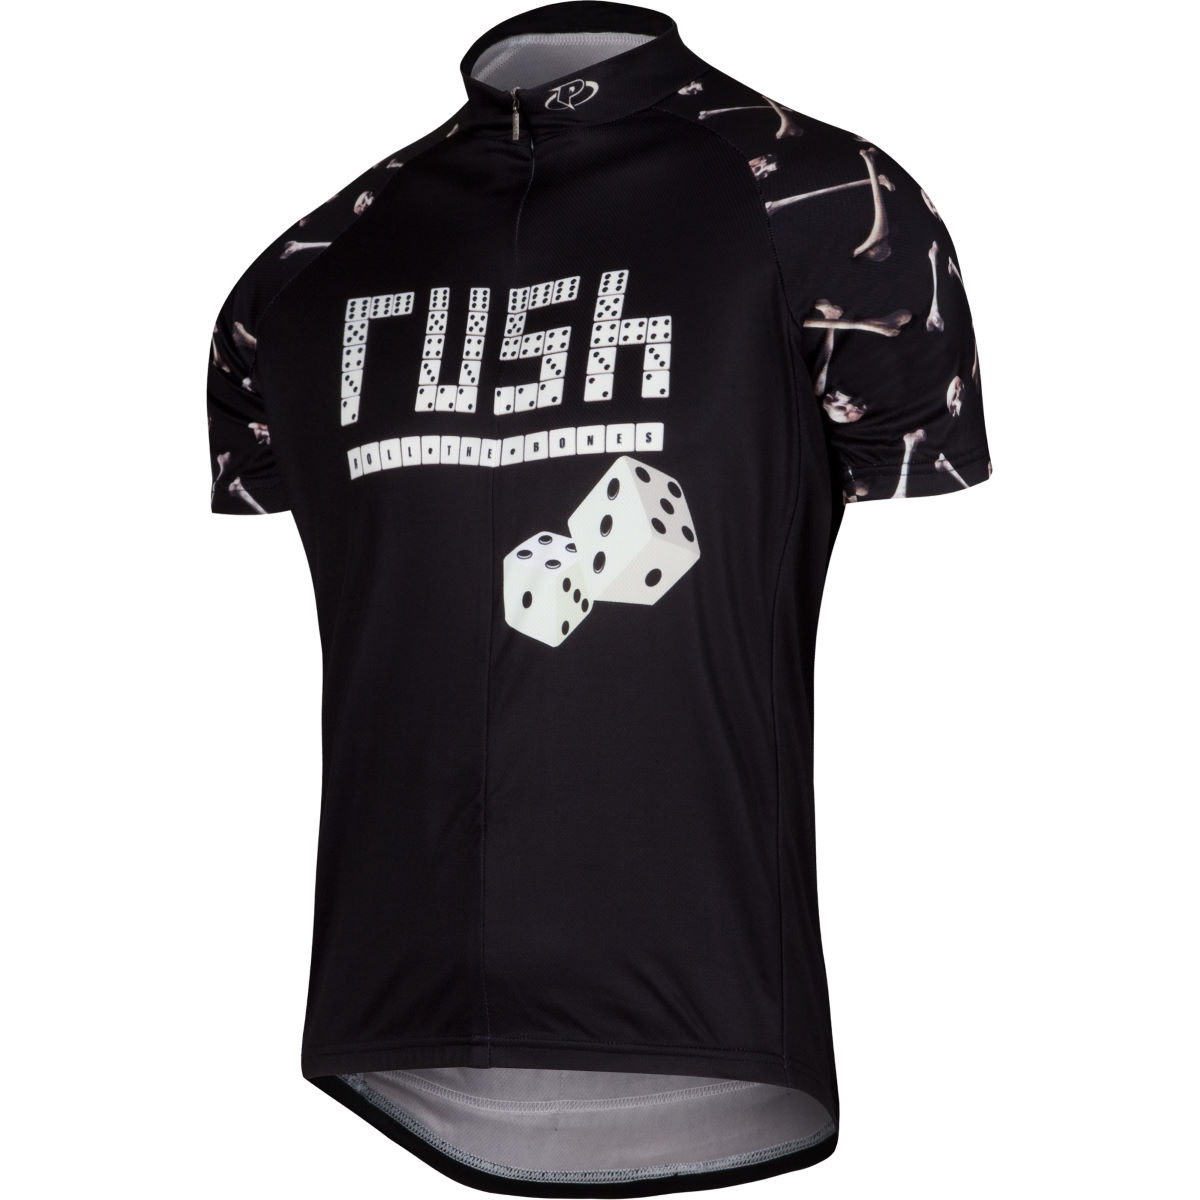 Primal Rush Roll The Bones Cycling Jersey